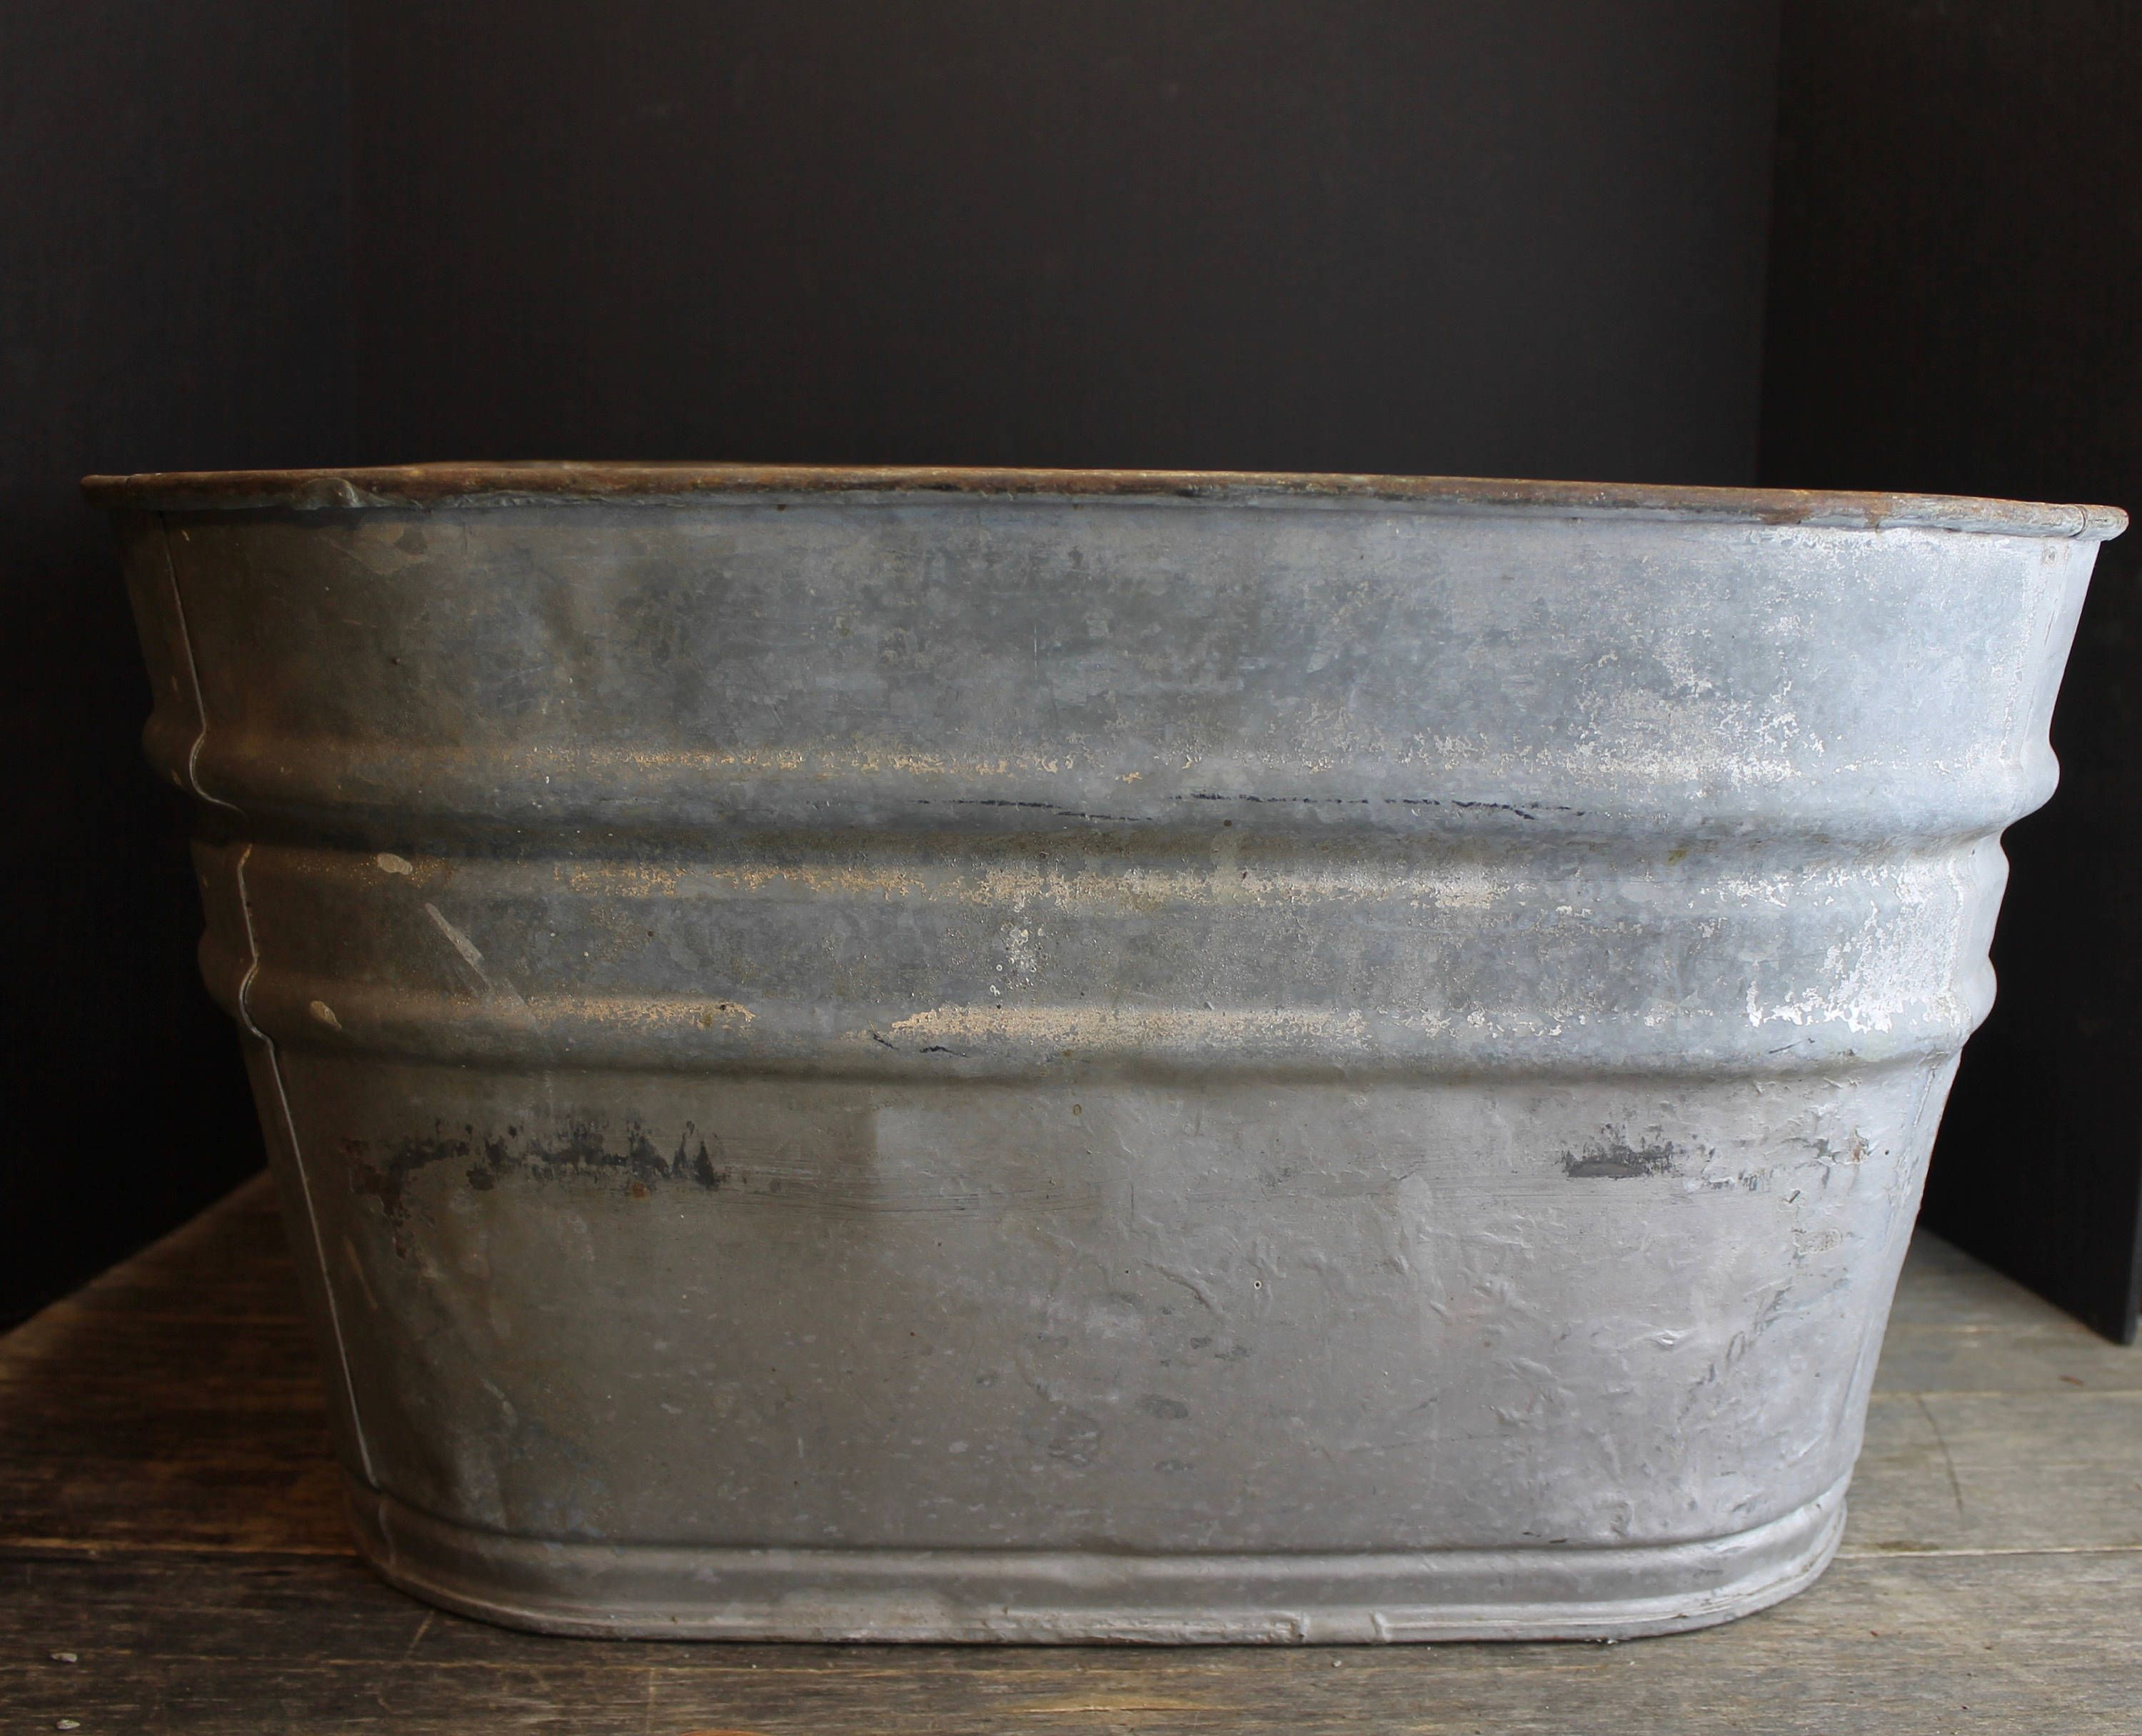 Vintage Large Square Zinc Galvanized Basin With Handles Rustic Wine Cooler Planter Wash Tub By Mybarn On E Wash Tubs Vintage Large Rustic Farm Wedding